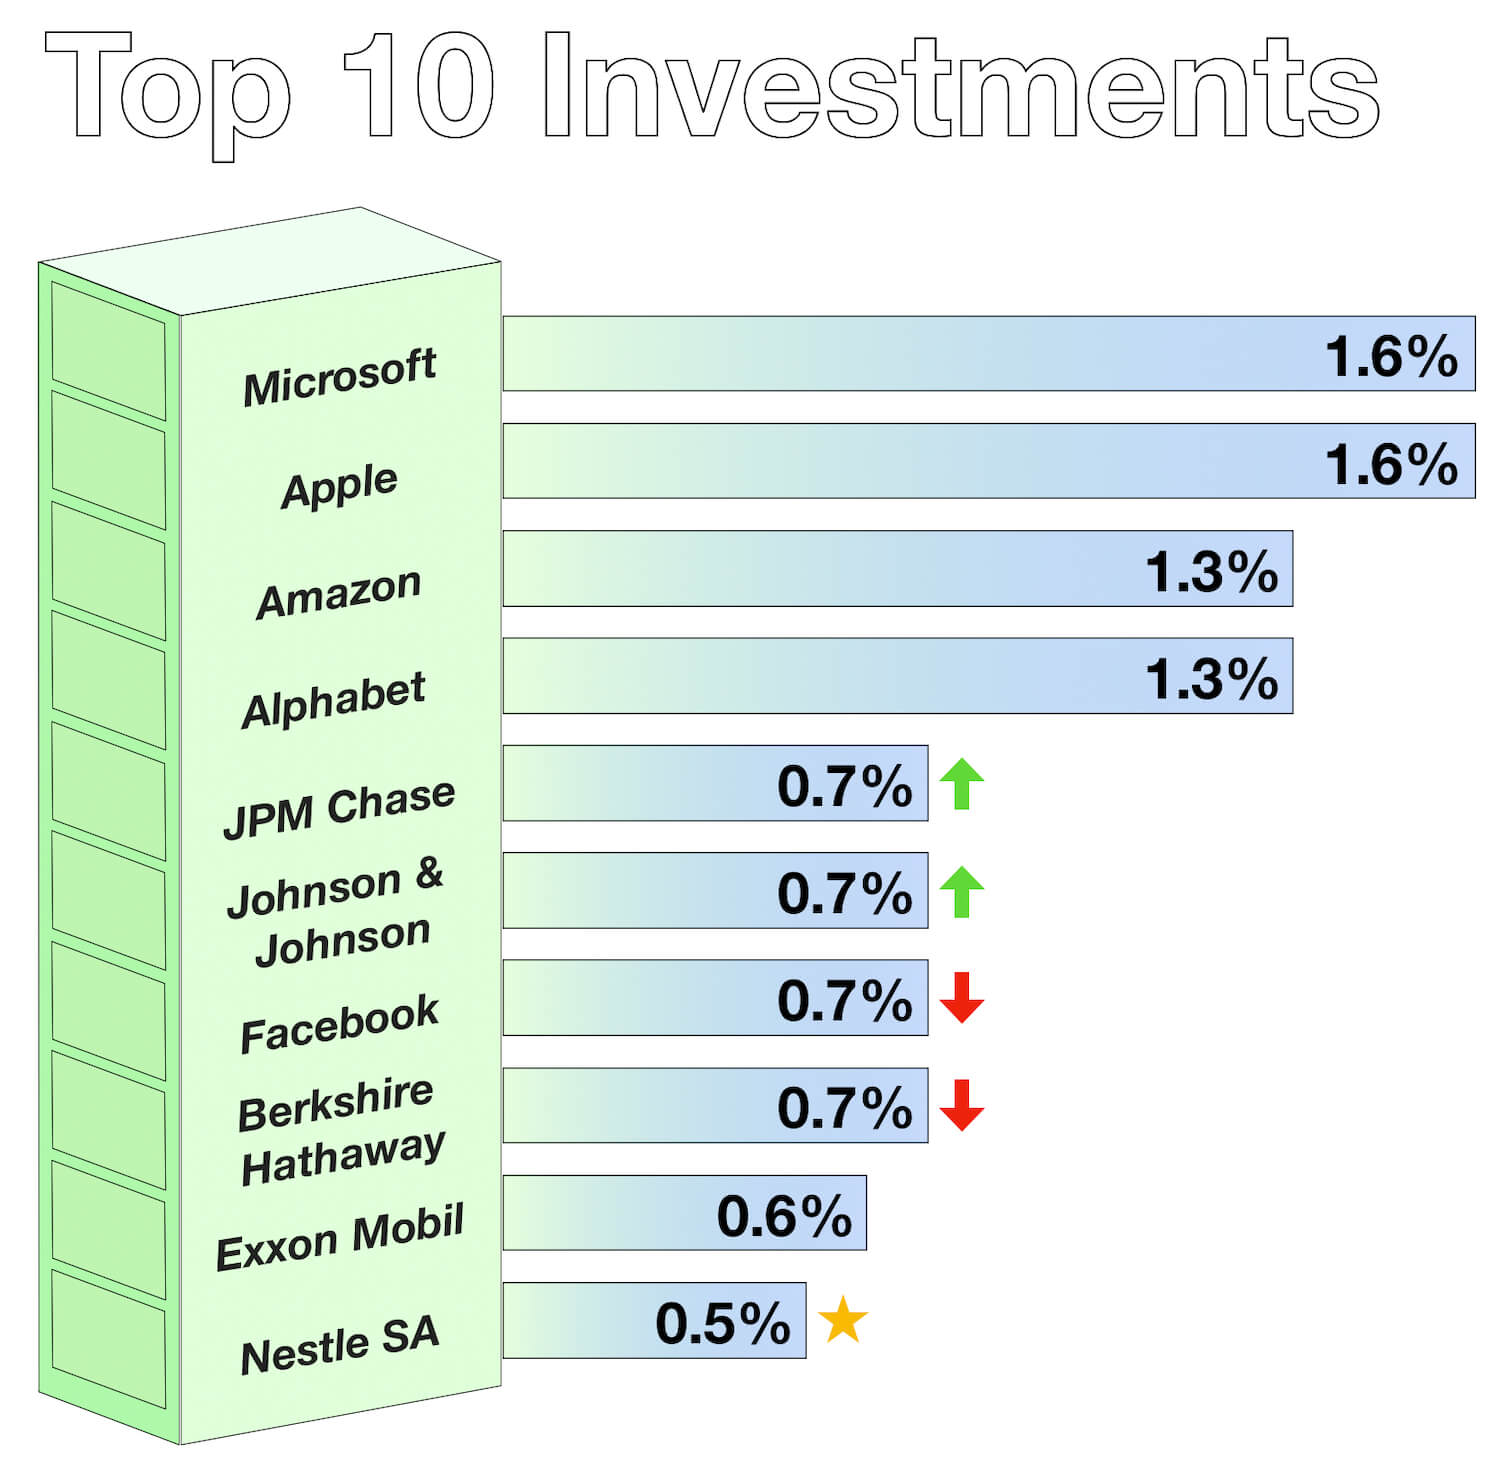 My Vanguard Passive Investments - Index Funds - Top Individual Investments - March 2019